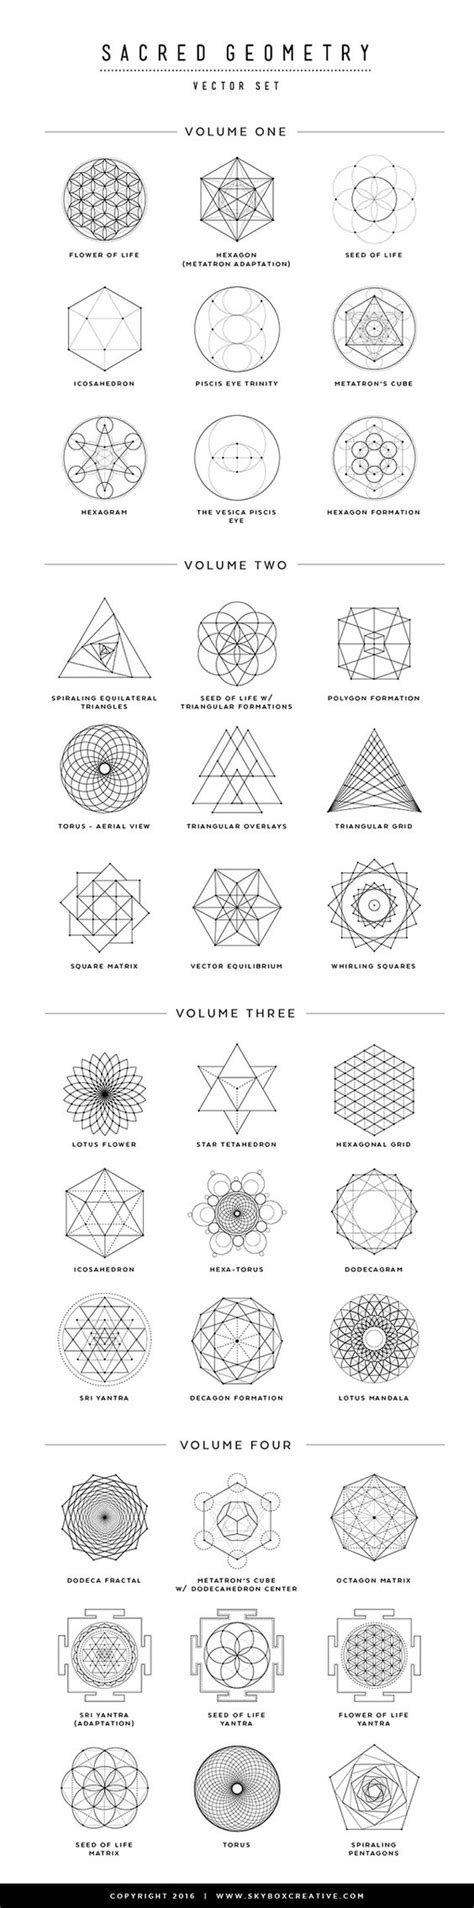 the meaning of sacred geometry part 3 the womb of sacred 36 sacred geometry vectors and their meanings bored art